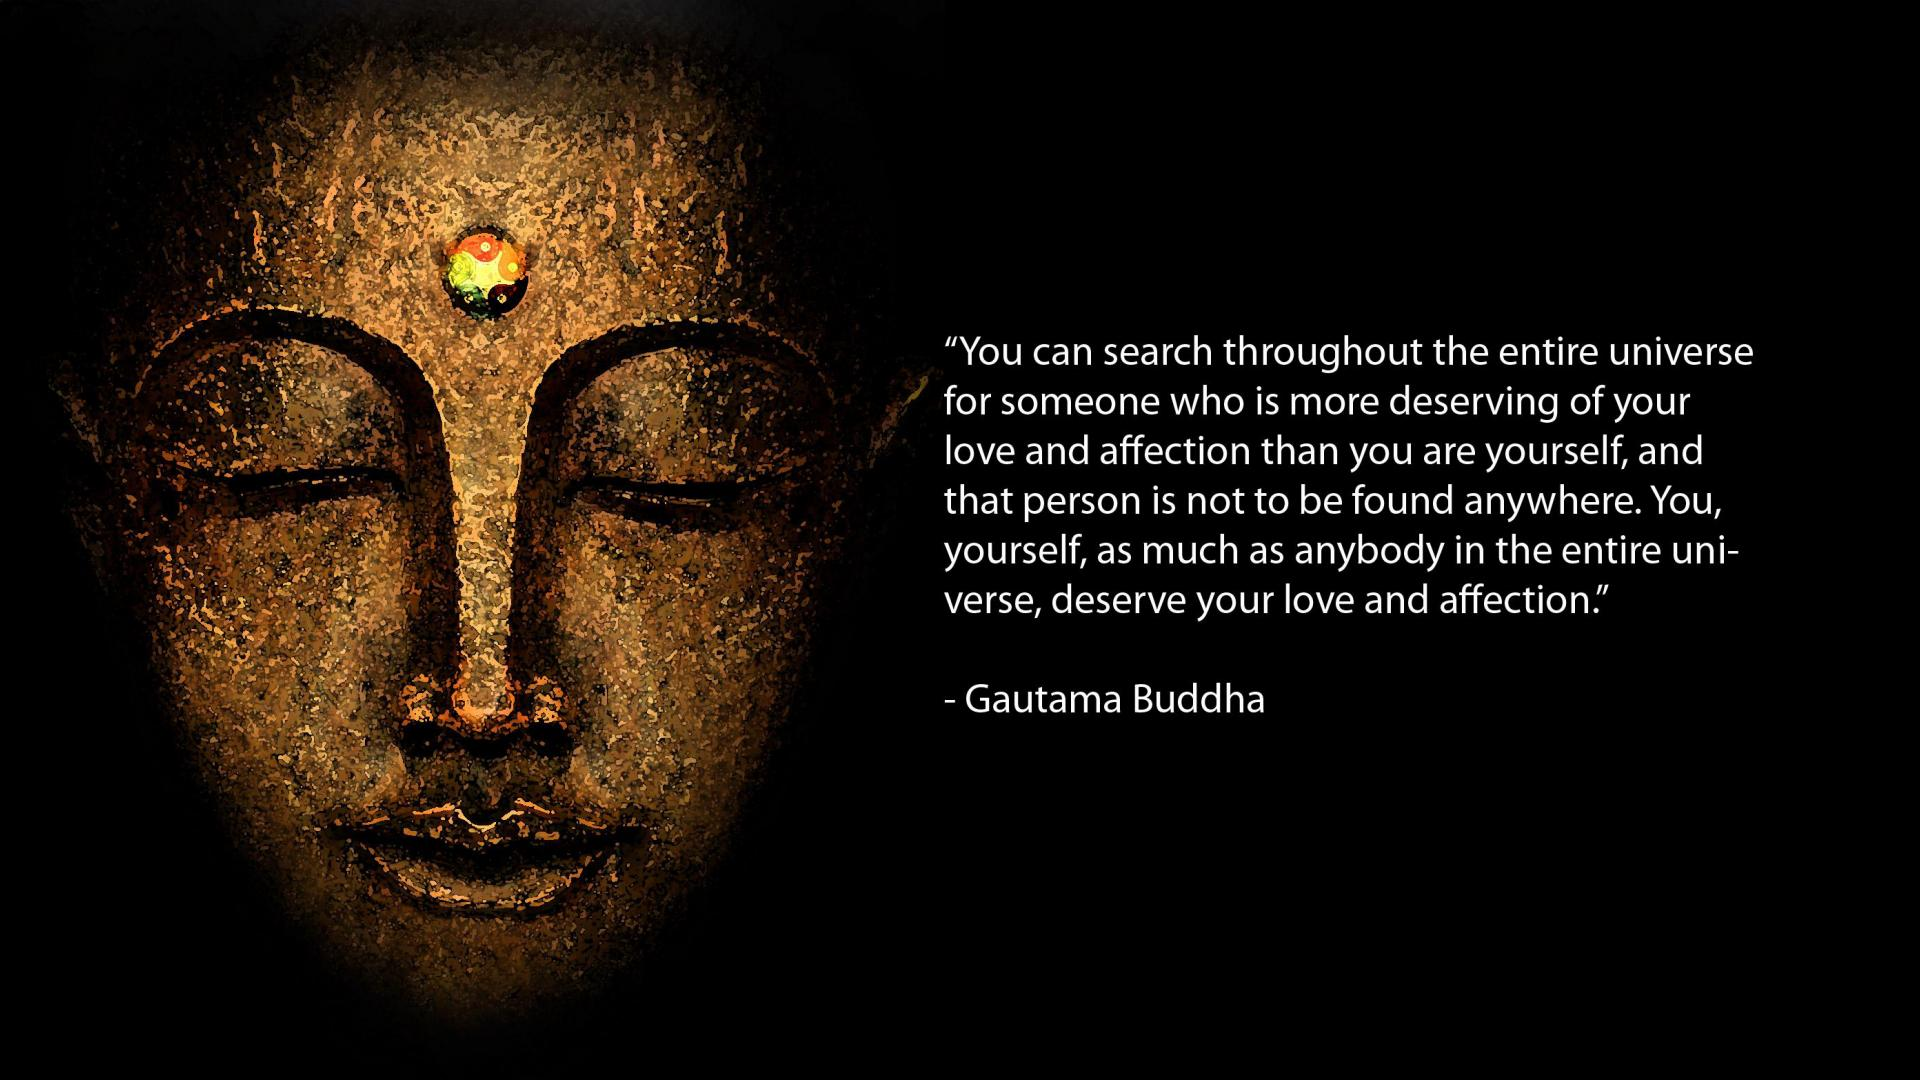 buddha wallpaper 1920x1080   wallpapersafari